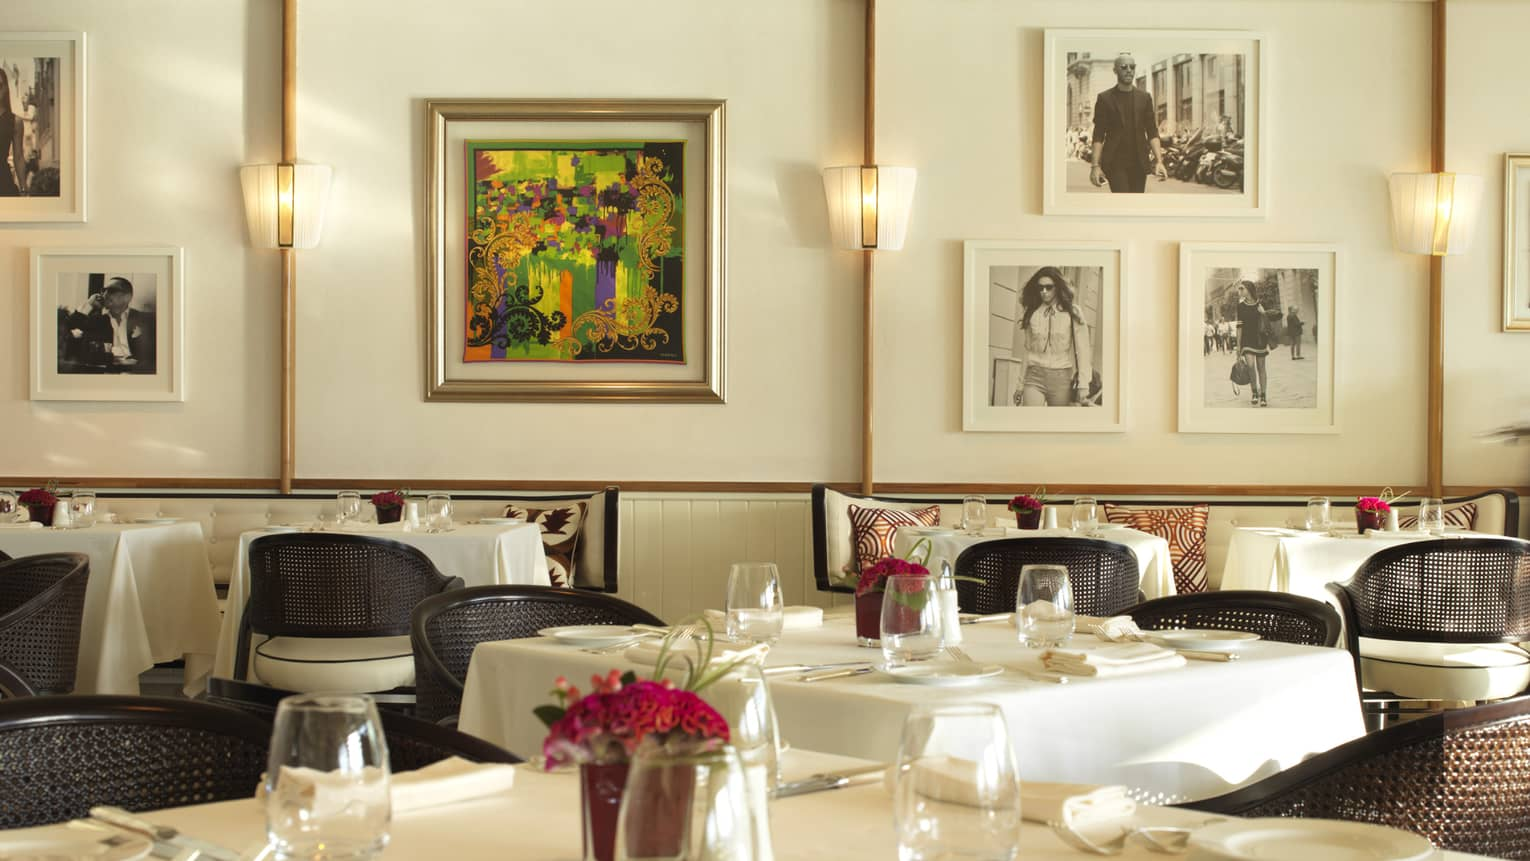 Server in blue suit walks through Cafe Milano dining room with elegant white dining tables, colourful art, framed black-and-white photos